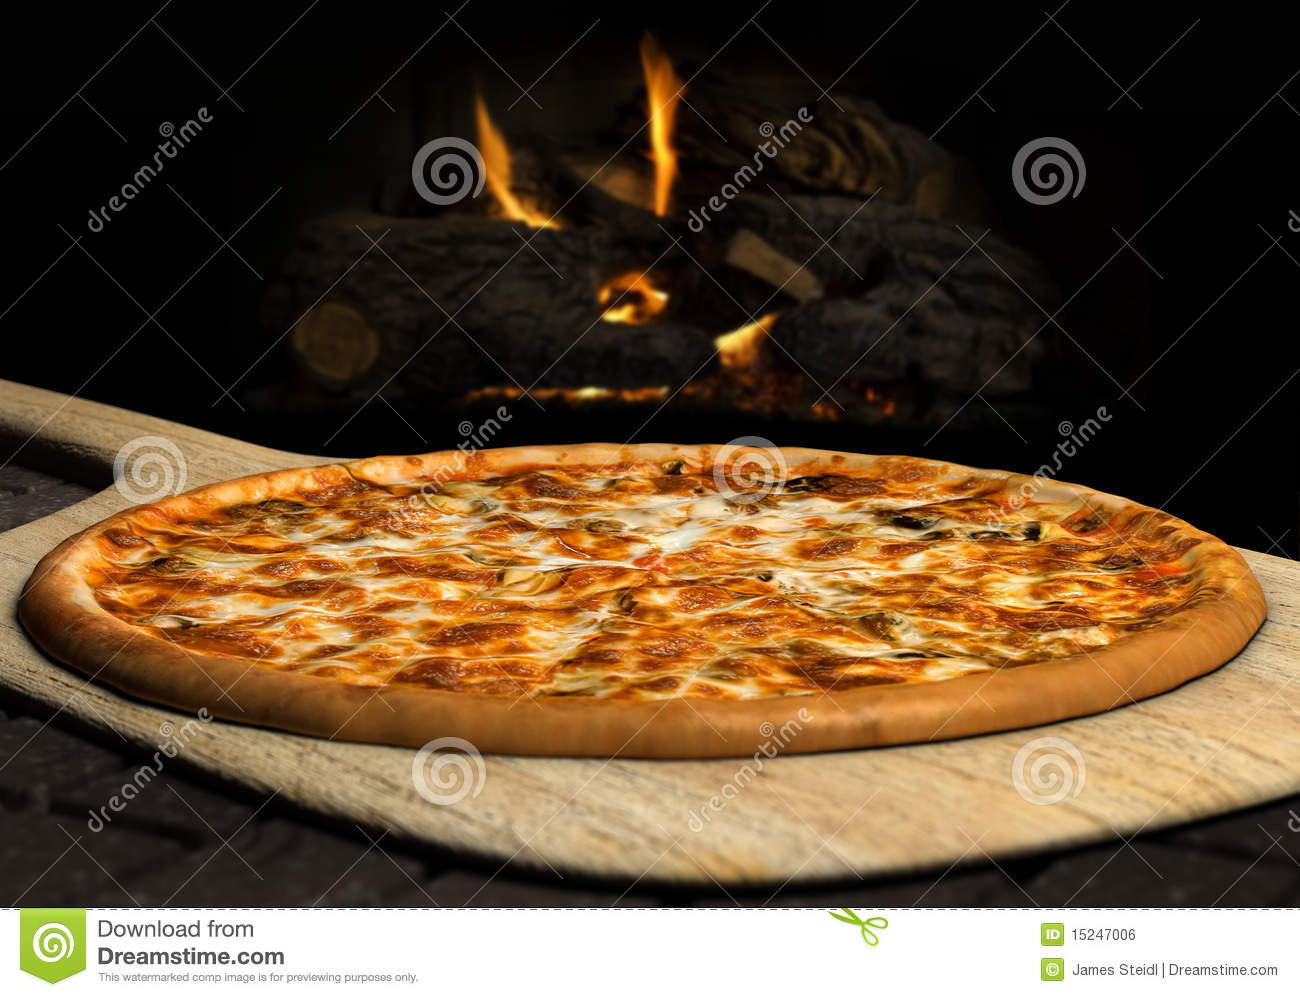 Pizza resting on a pizza peel near an open fire.